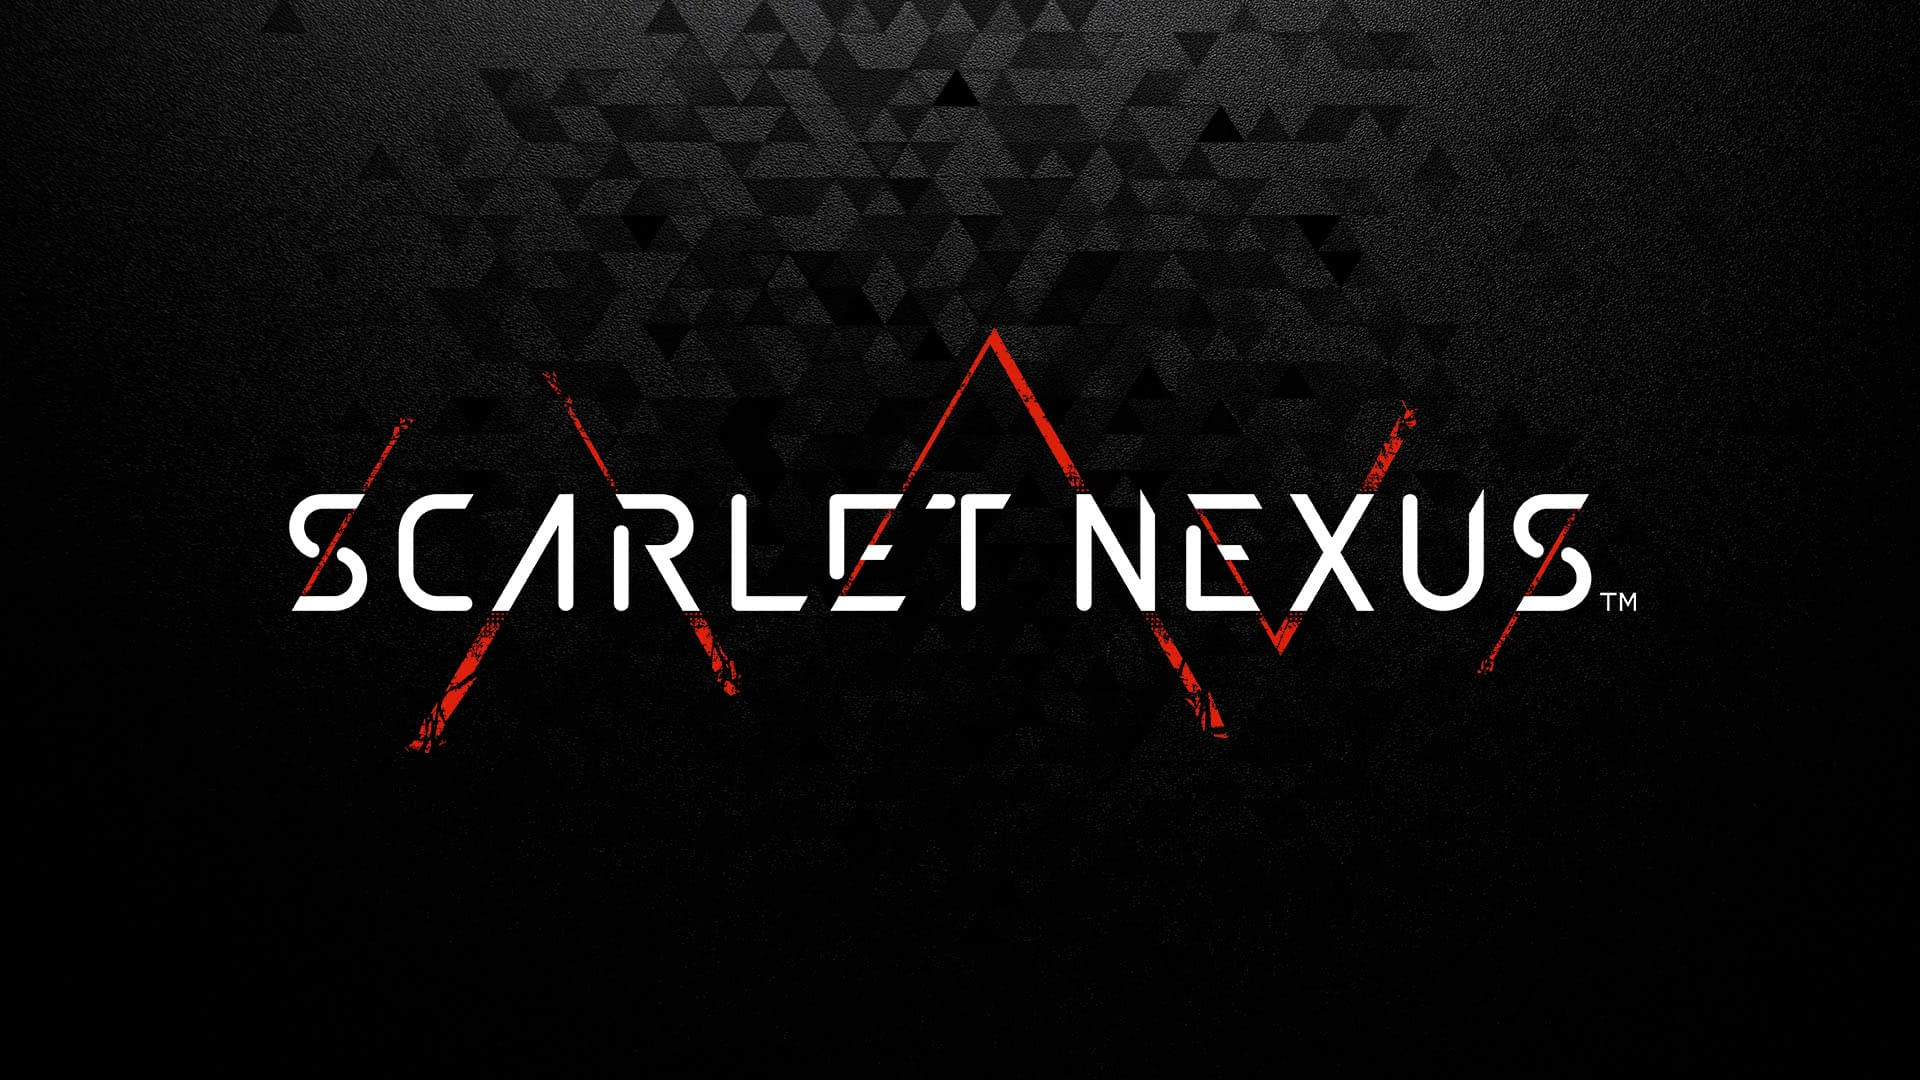 dark scarlet nexus logo wallpaper 72388